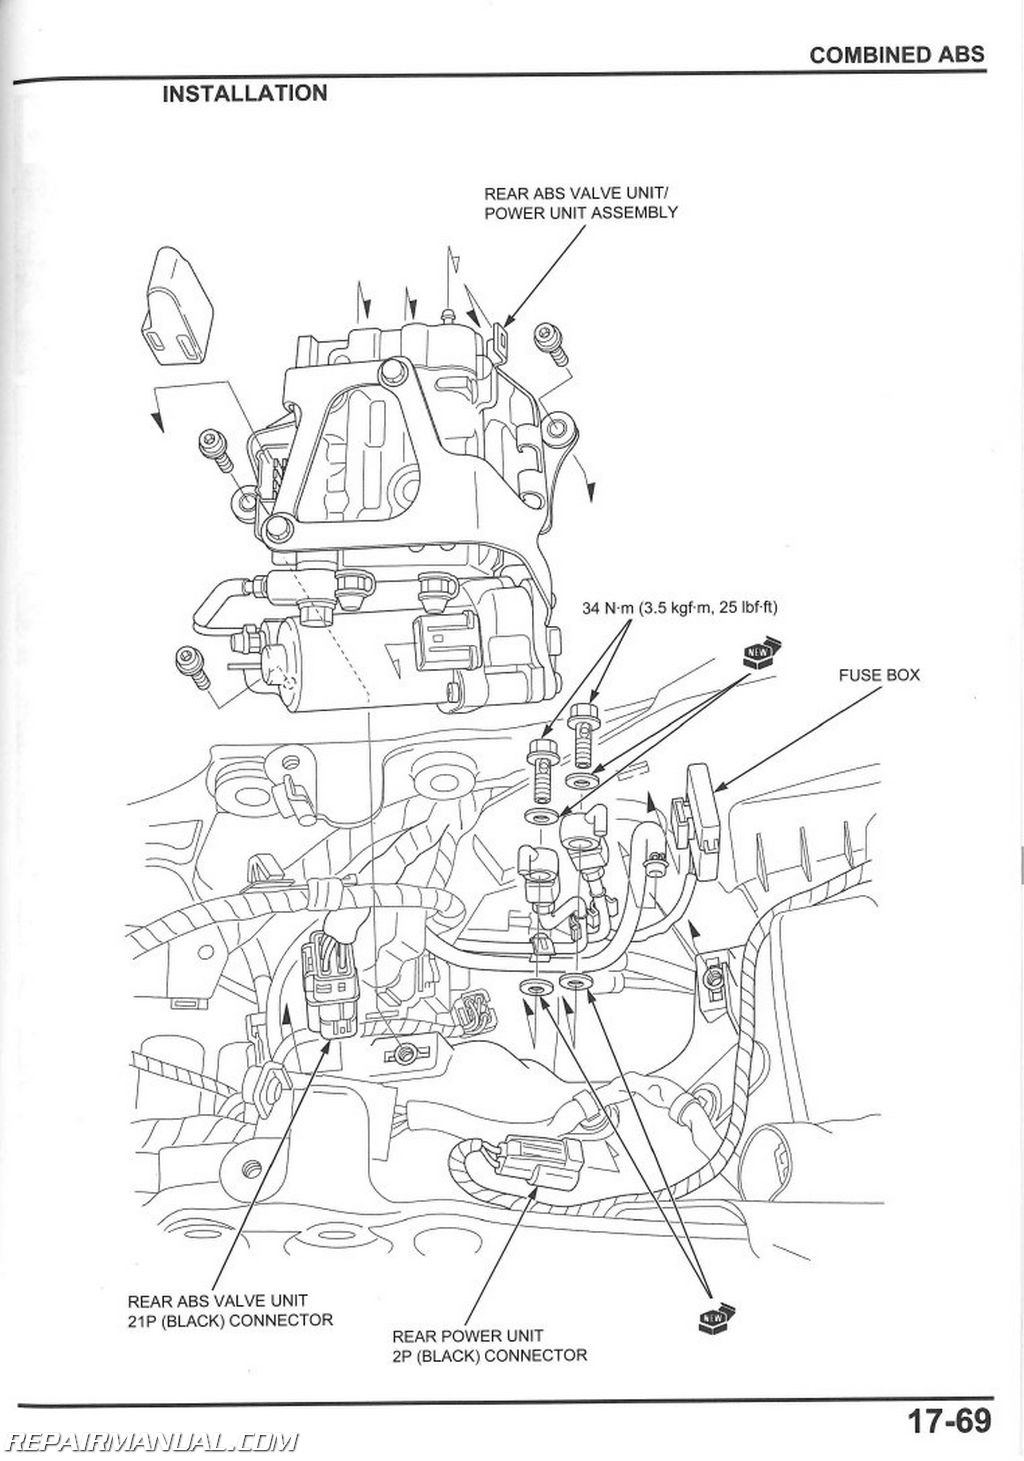 2005 cbr600rr wiring diagram 2005 image wiring diagram 2005 cbr600rr wiring diagram service manual wirdig on 2005 cbr600rr wiring diagram